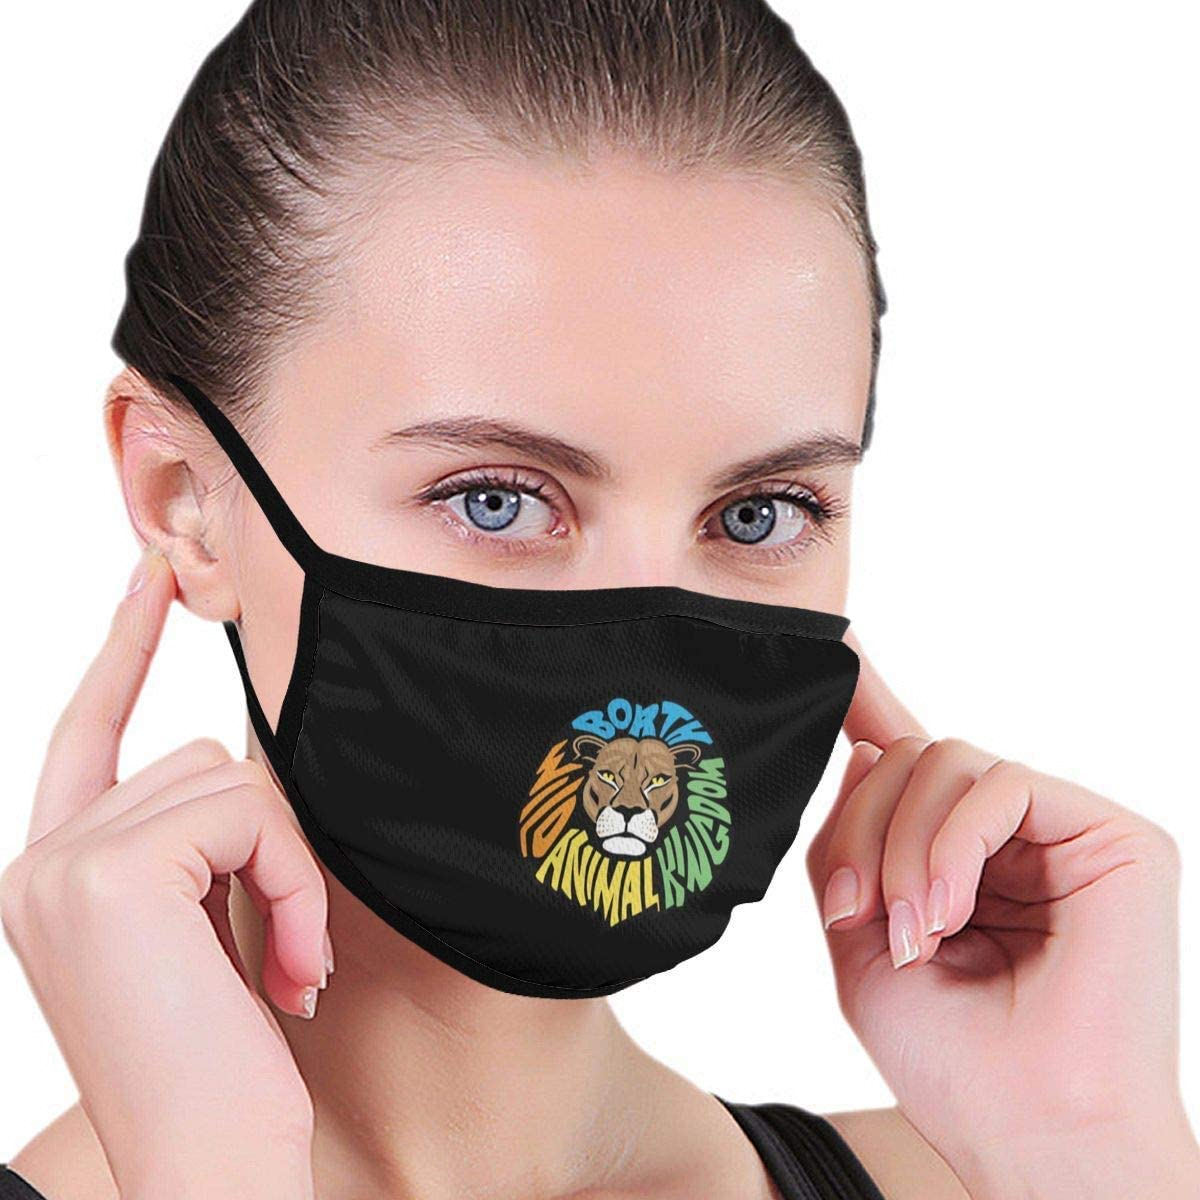 BOKUTT Dust and odor mask Wild Animal Kingdom MenS WomenS Reusable Print Fashion Washable Nose Wear For Cosplay-Washable and reusable